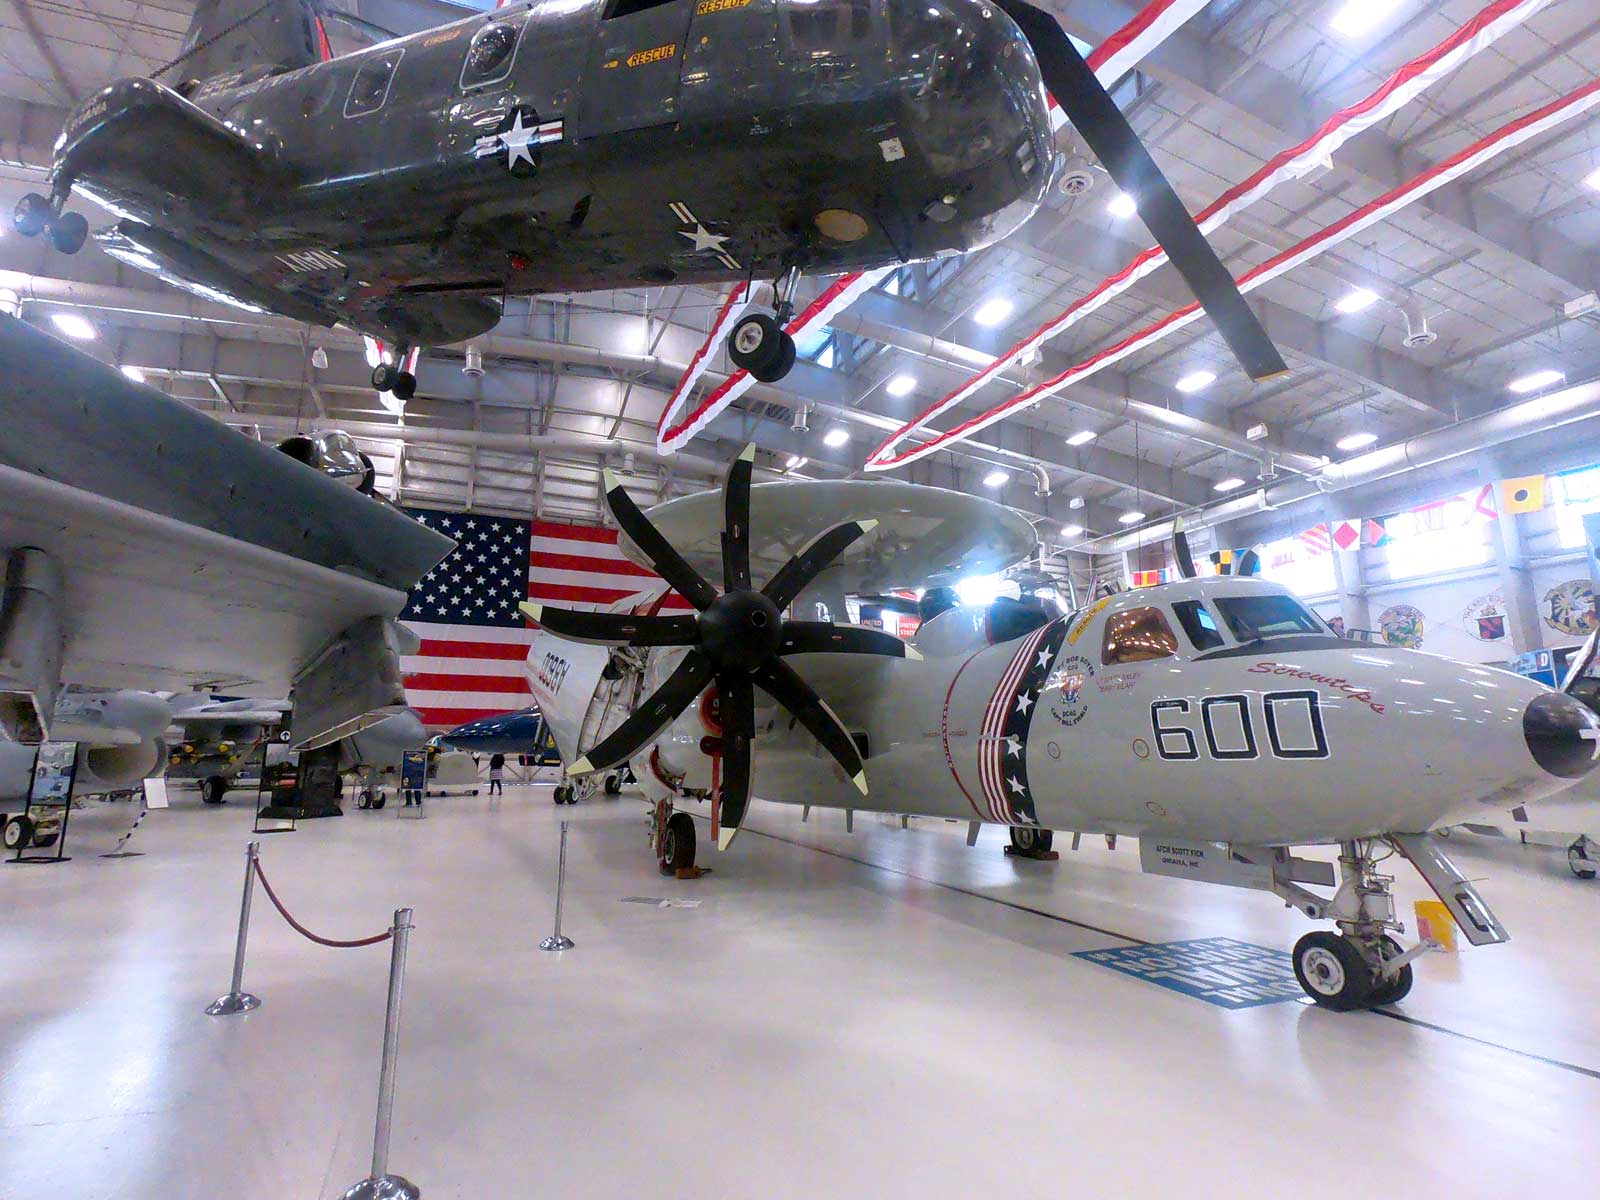 Helicopter and radar plane in the hangar display at National Naval Aviation Museum, Pensacola, Florida